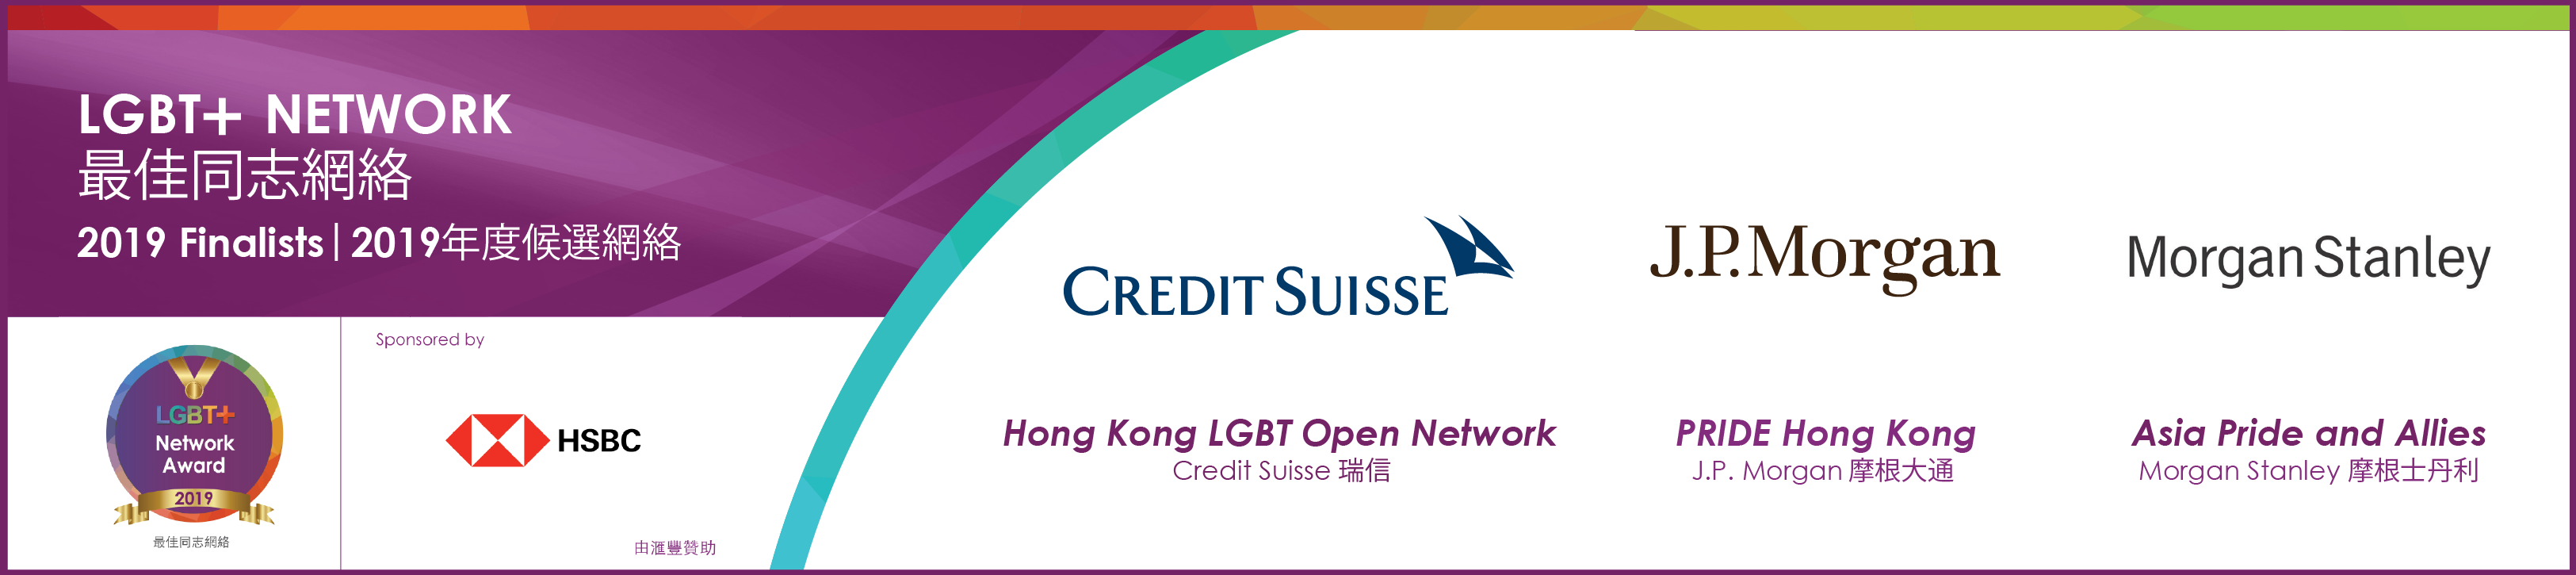 2019 Hong Kong LGBT+ Inclusion Awards - Finalists | Community Business